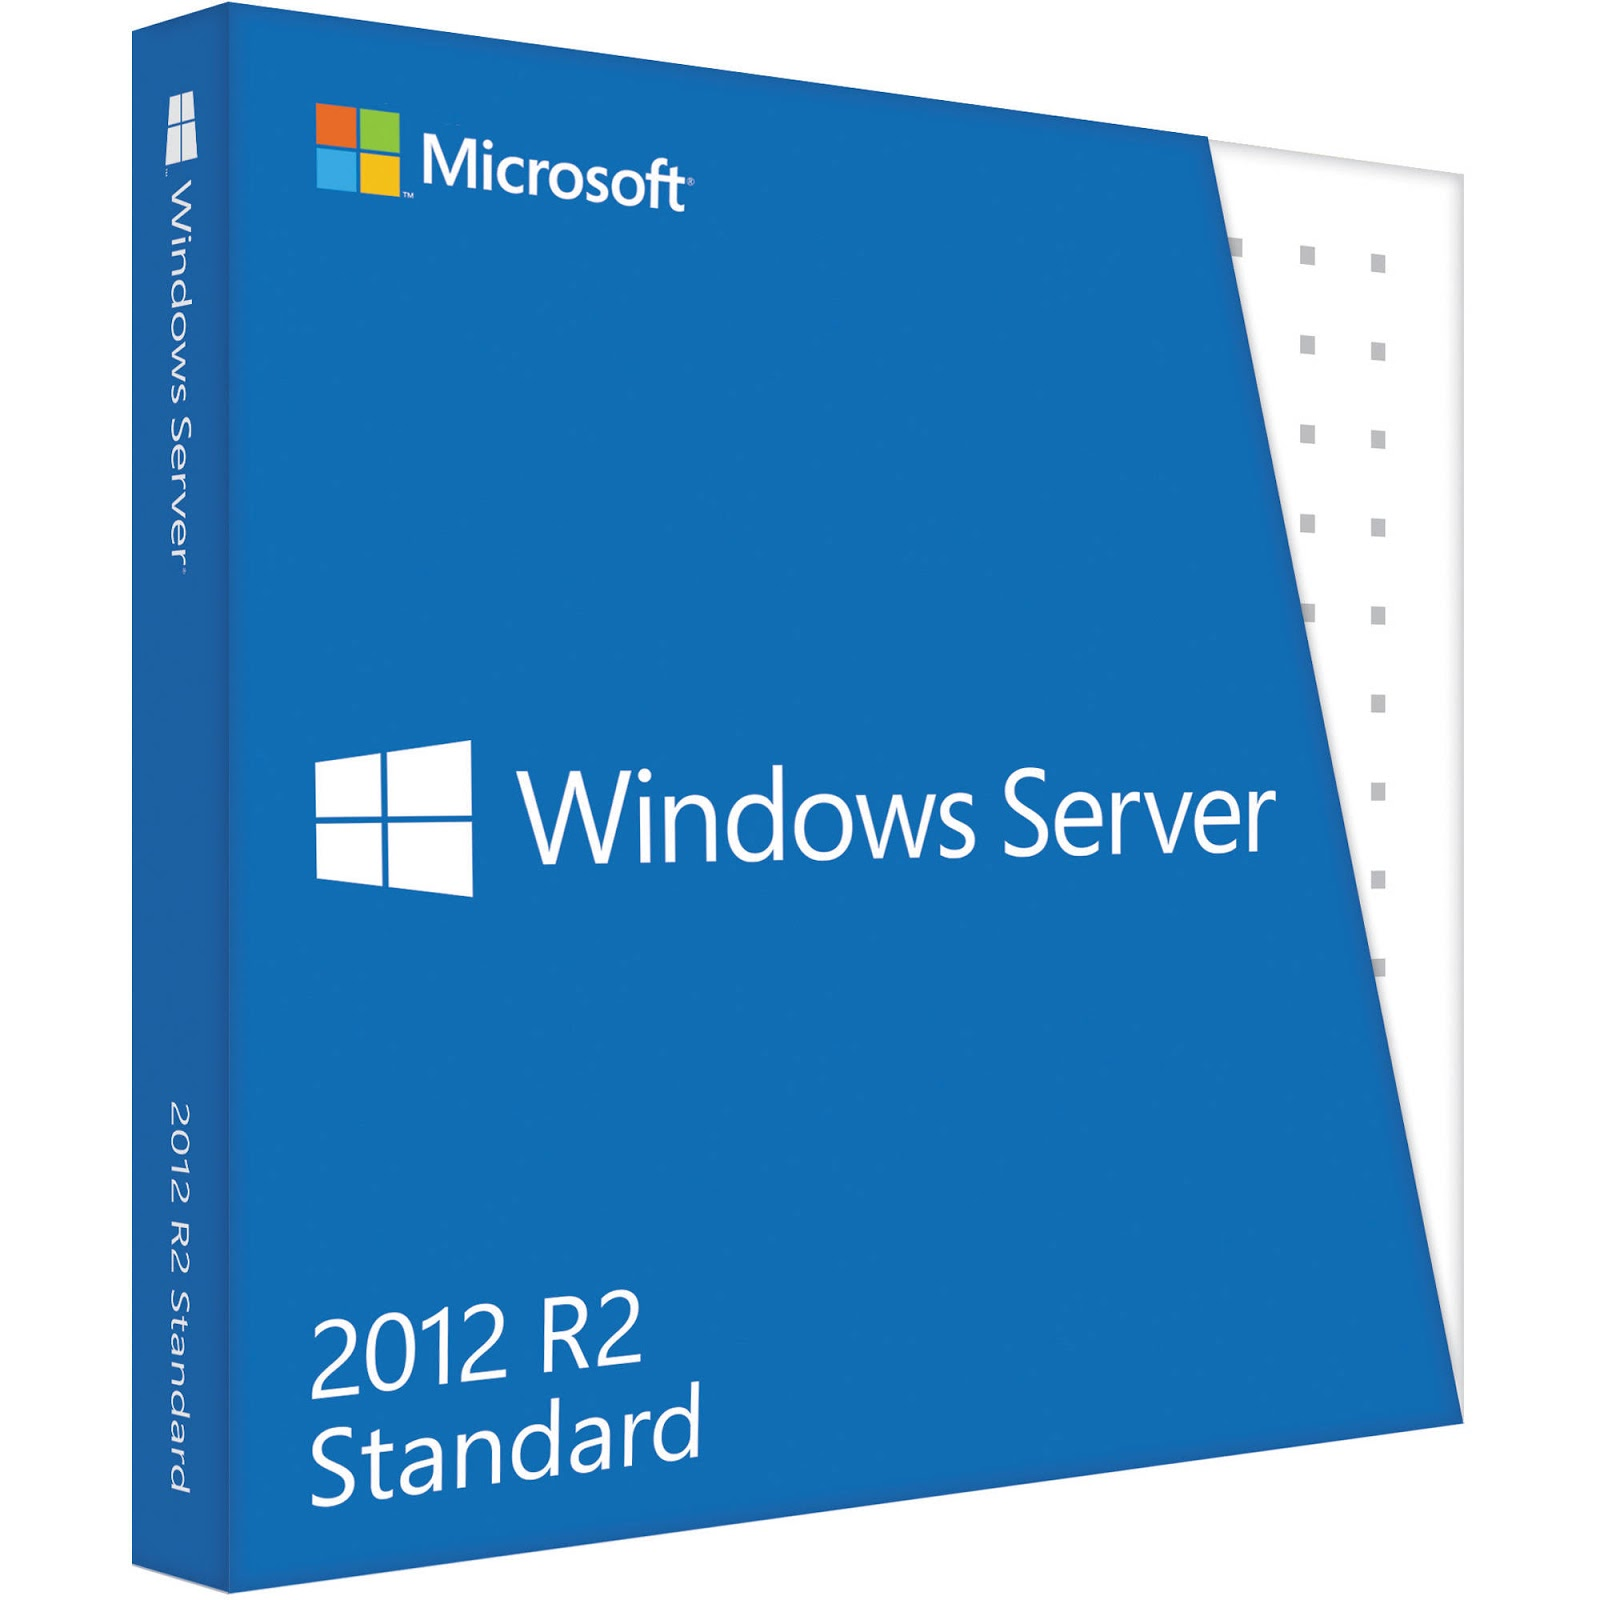 Microsoft windows server 7 server 2017 r2 x64 download